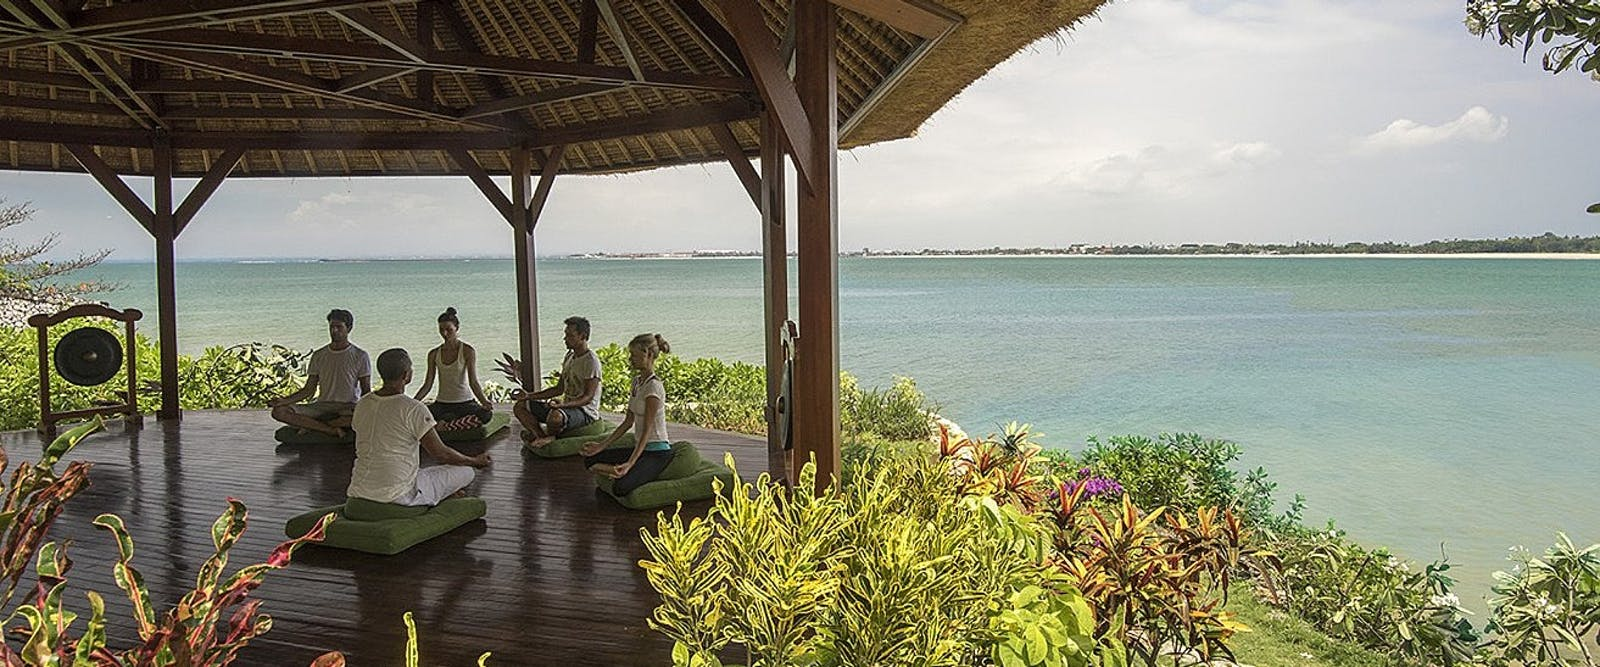 Meditation at nirvana shanti at Four Seasons Resort Bali at Jimbaran Bay